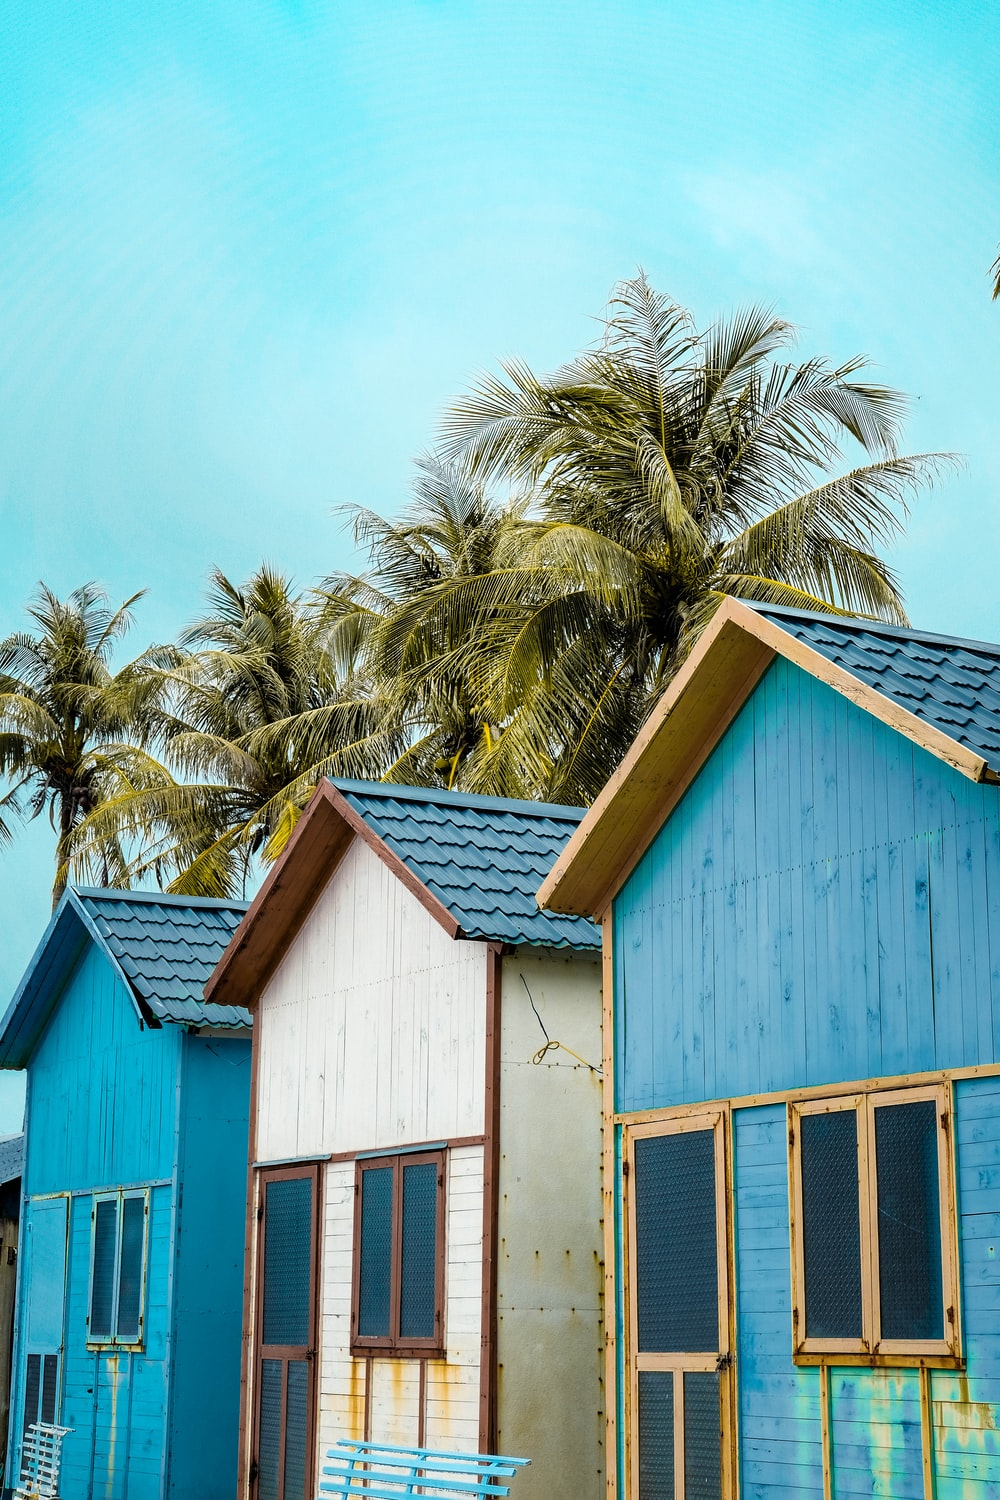 blue and white wooden houses